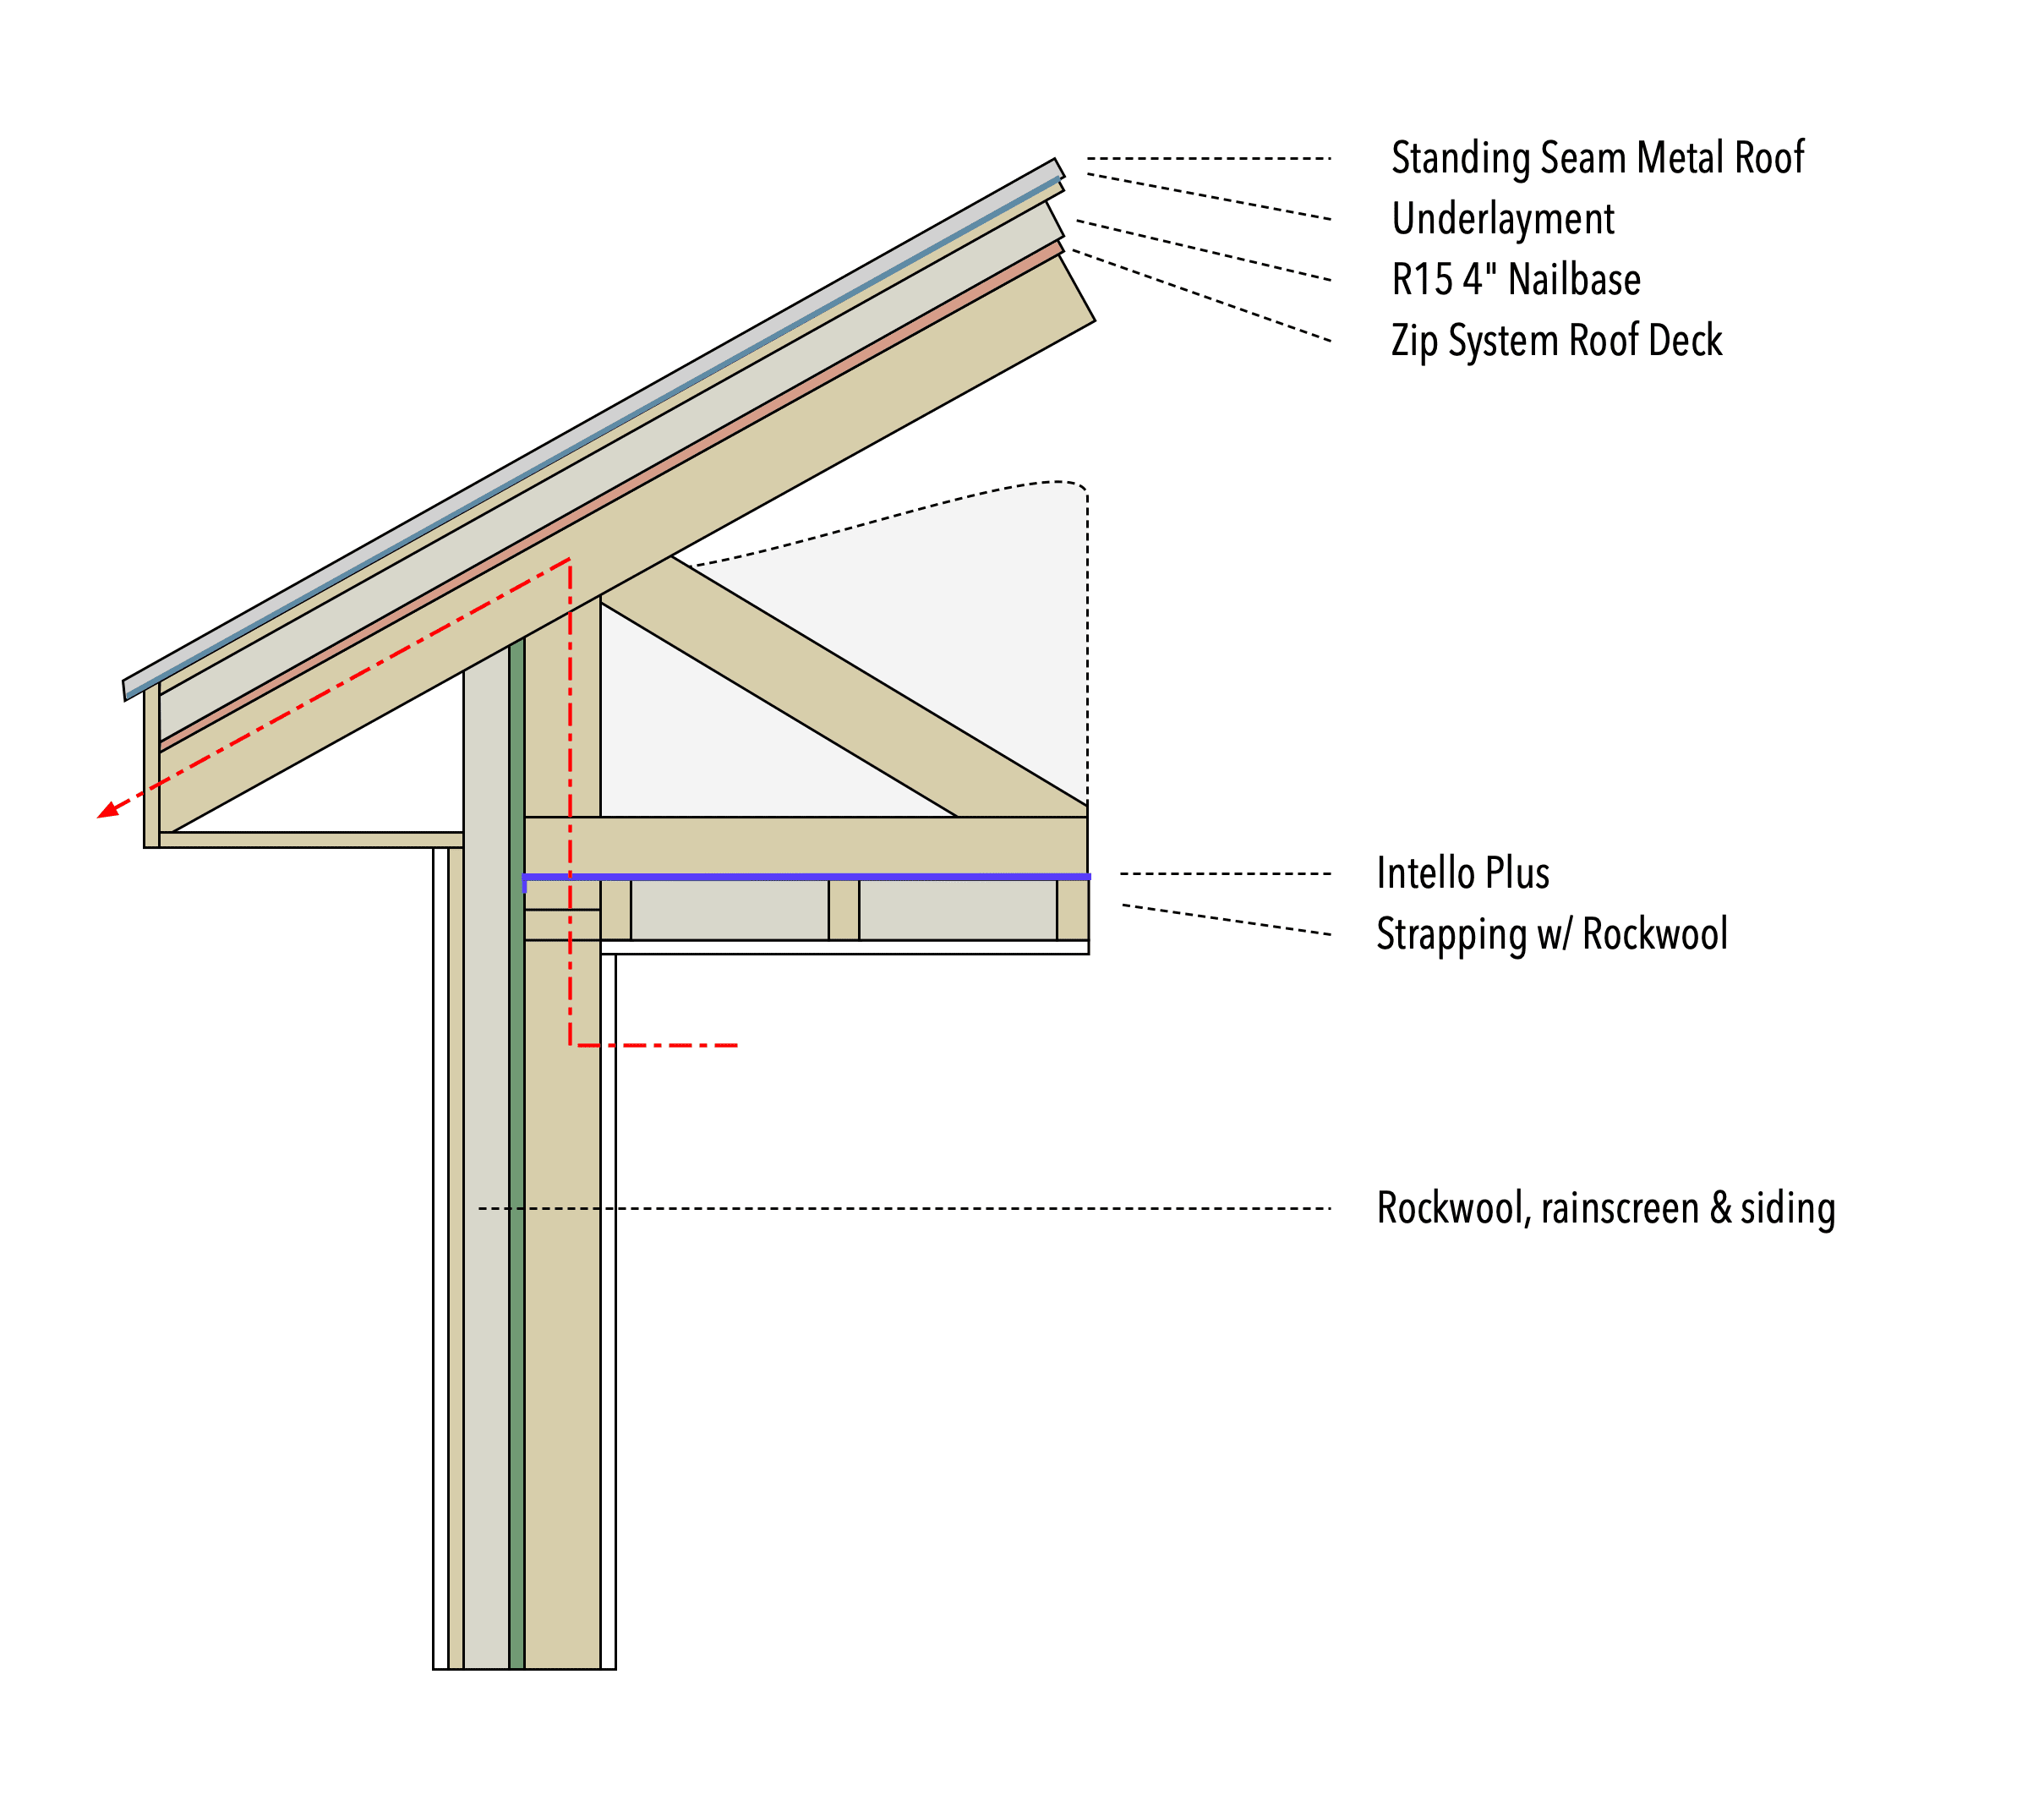 Working Out Roof Transitions